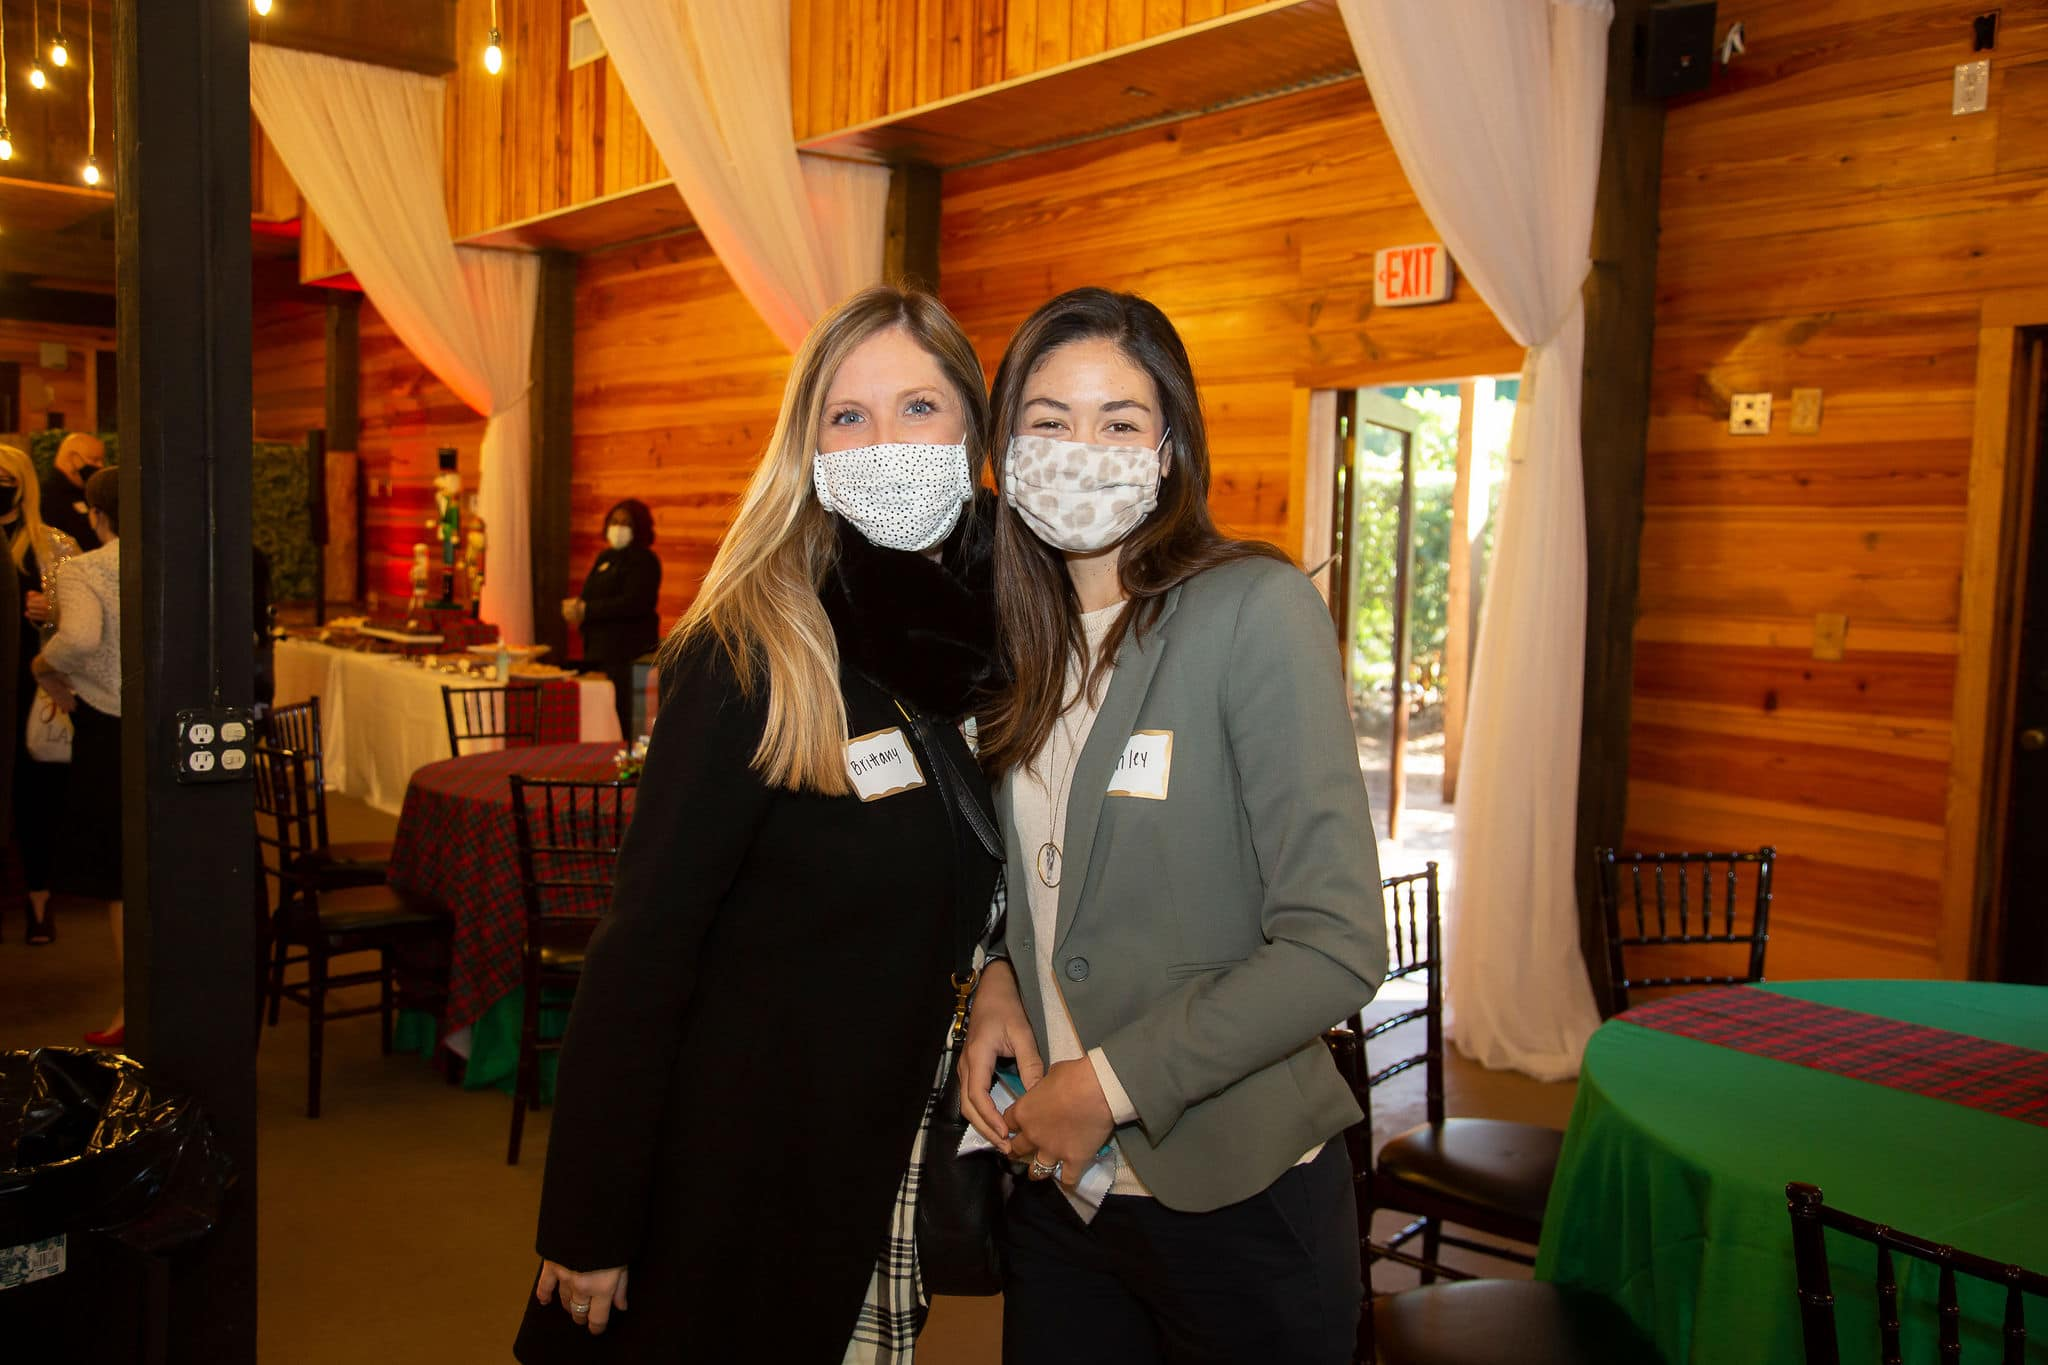 two woman stand together with light colored face coverings for a photograph wearing jackets and name tags next to table with festive green linen